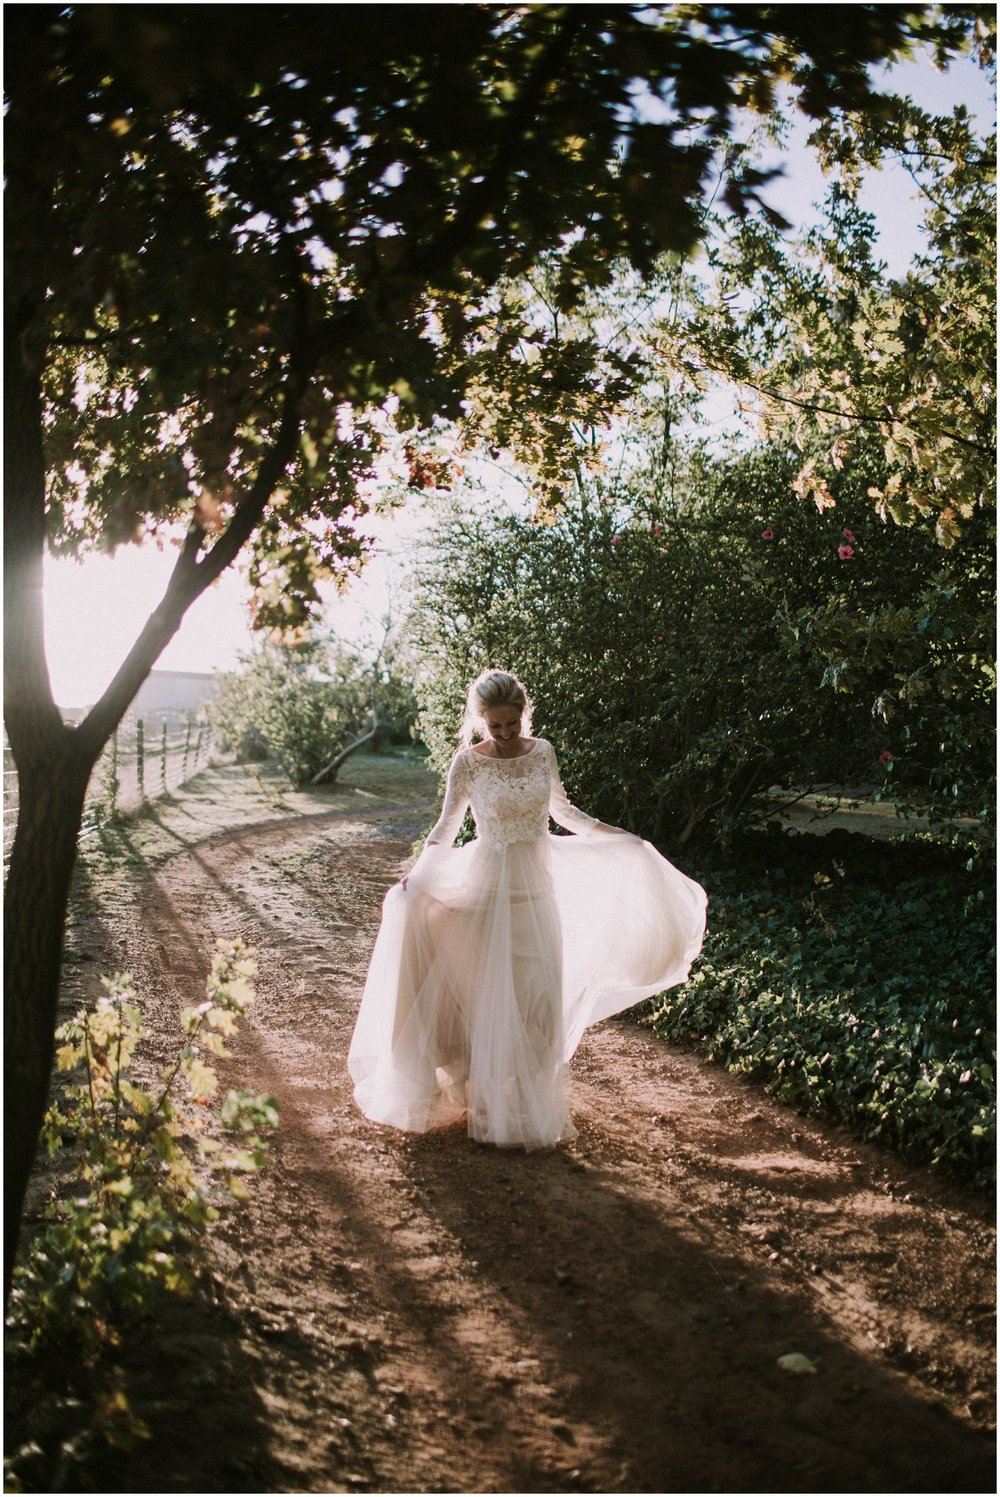 Top Wedding Photographer Cape Town South Africa Artistic Creative Documentary Wedding Photography Rue Kruger_0744.jpg